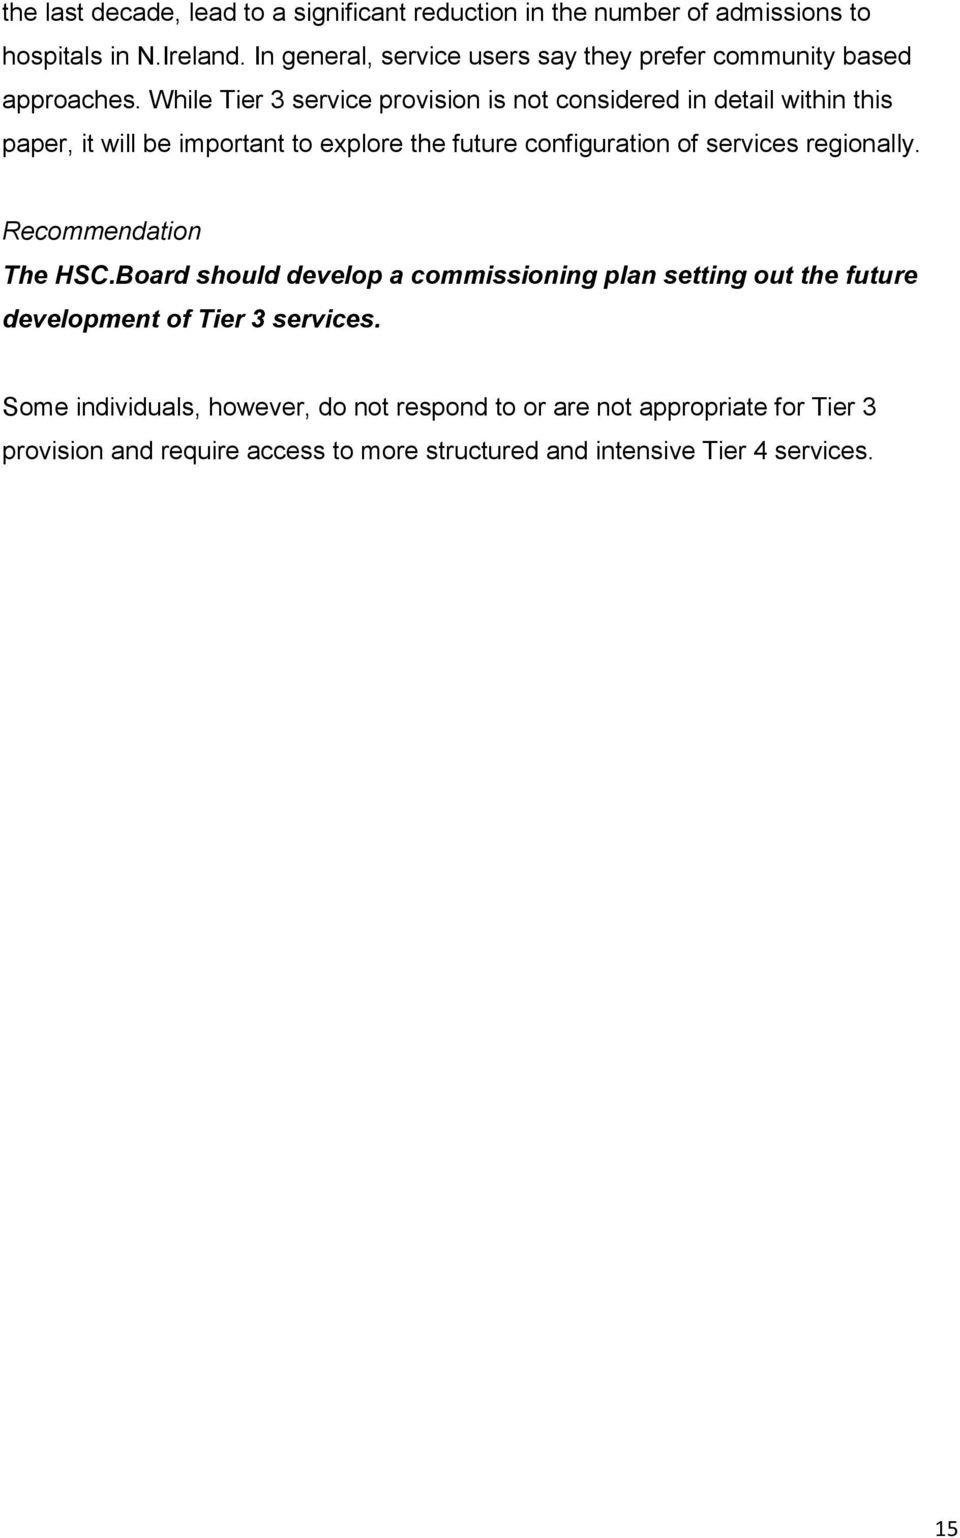 While Tier 3 service provision is not considered in detail within this paper, it will be important to explore the future configuration of services